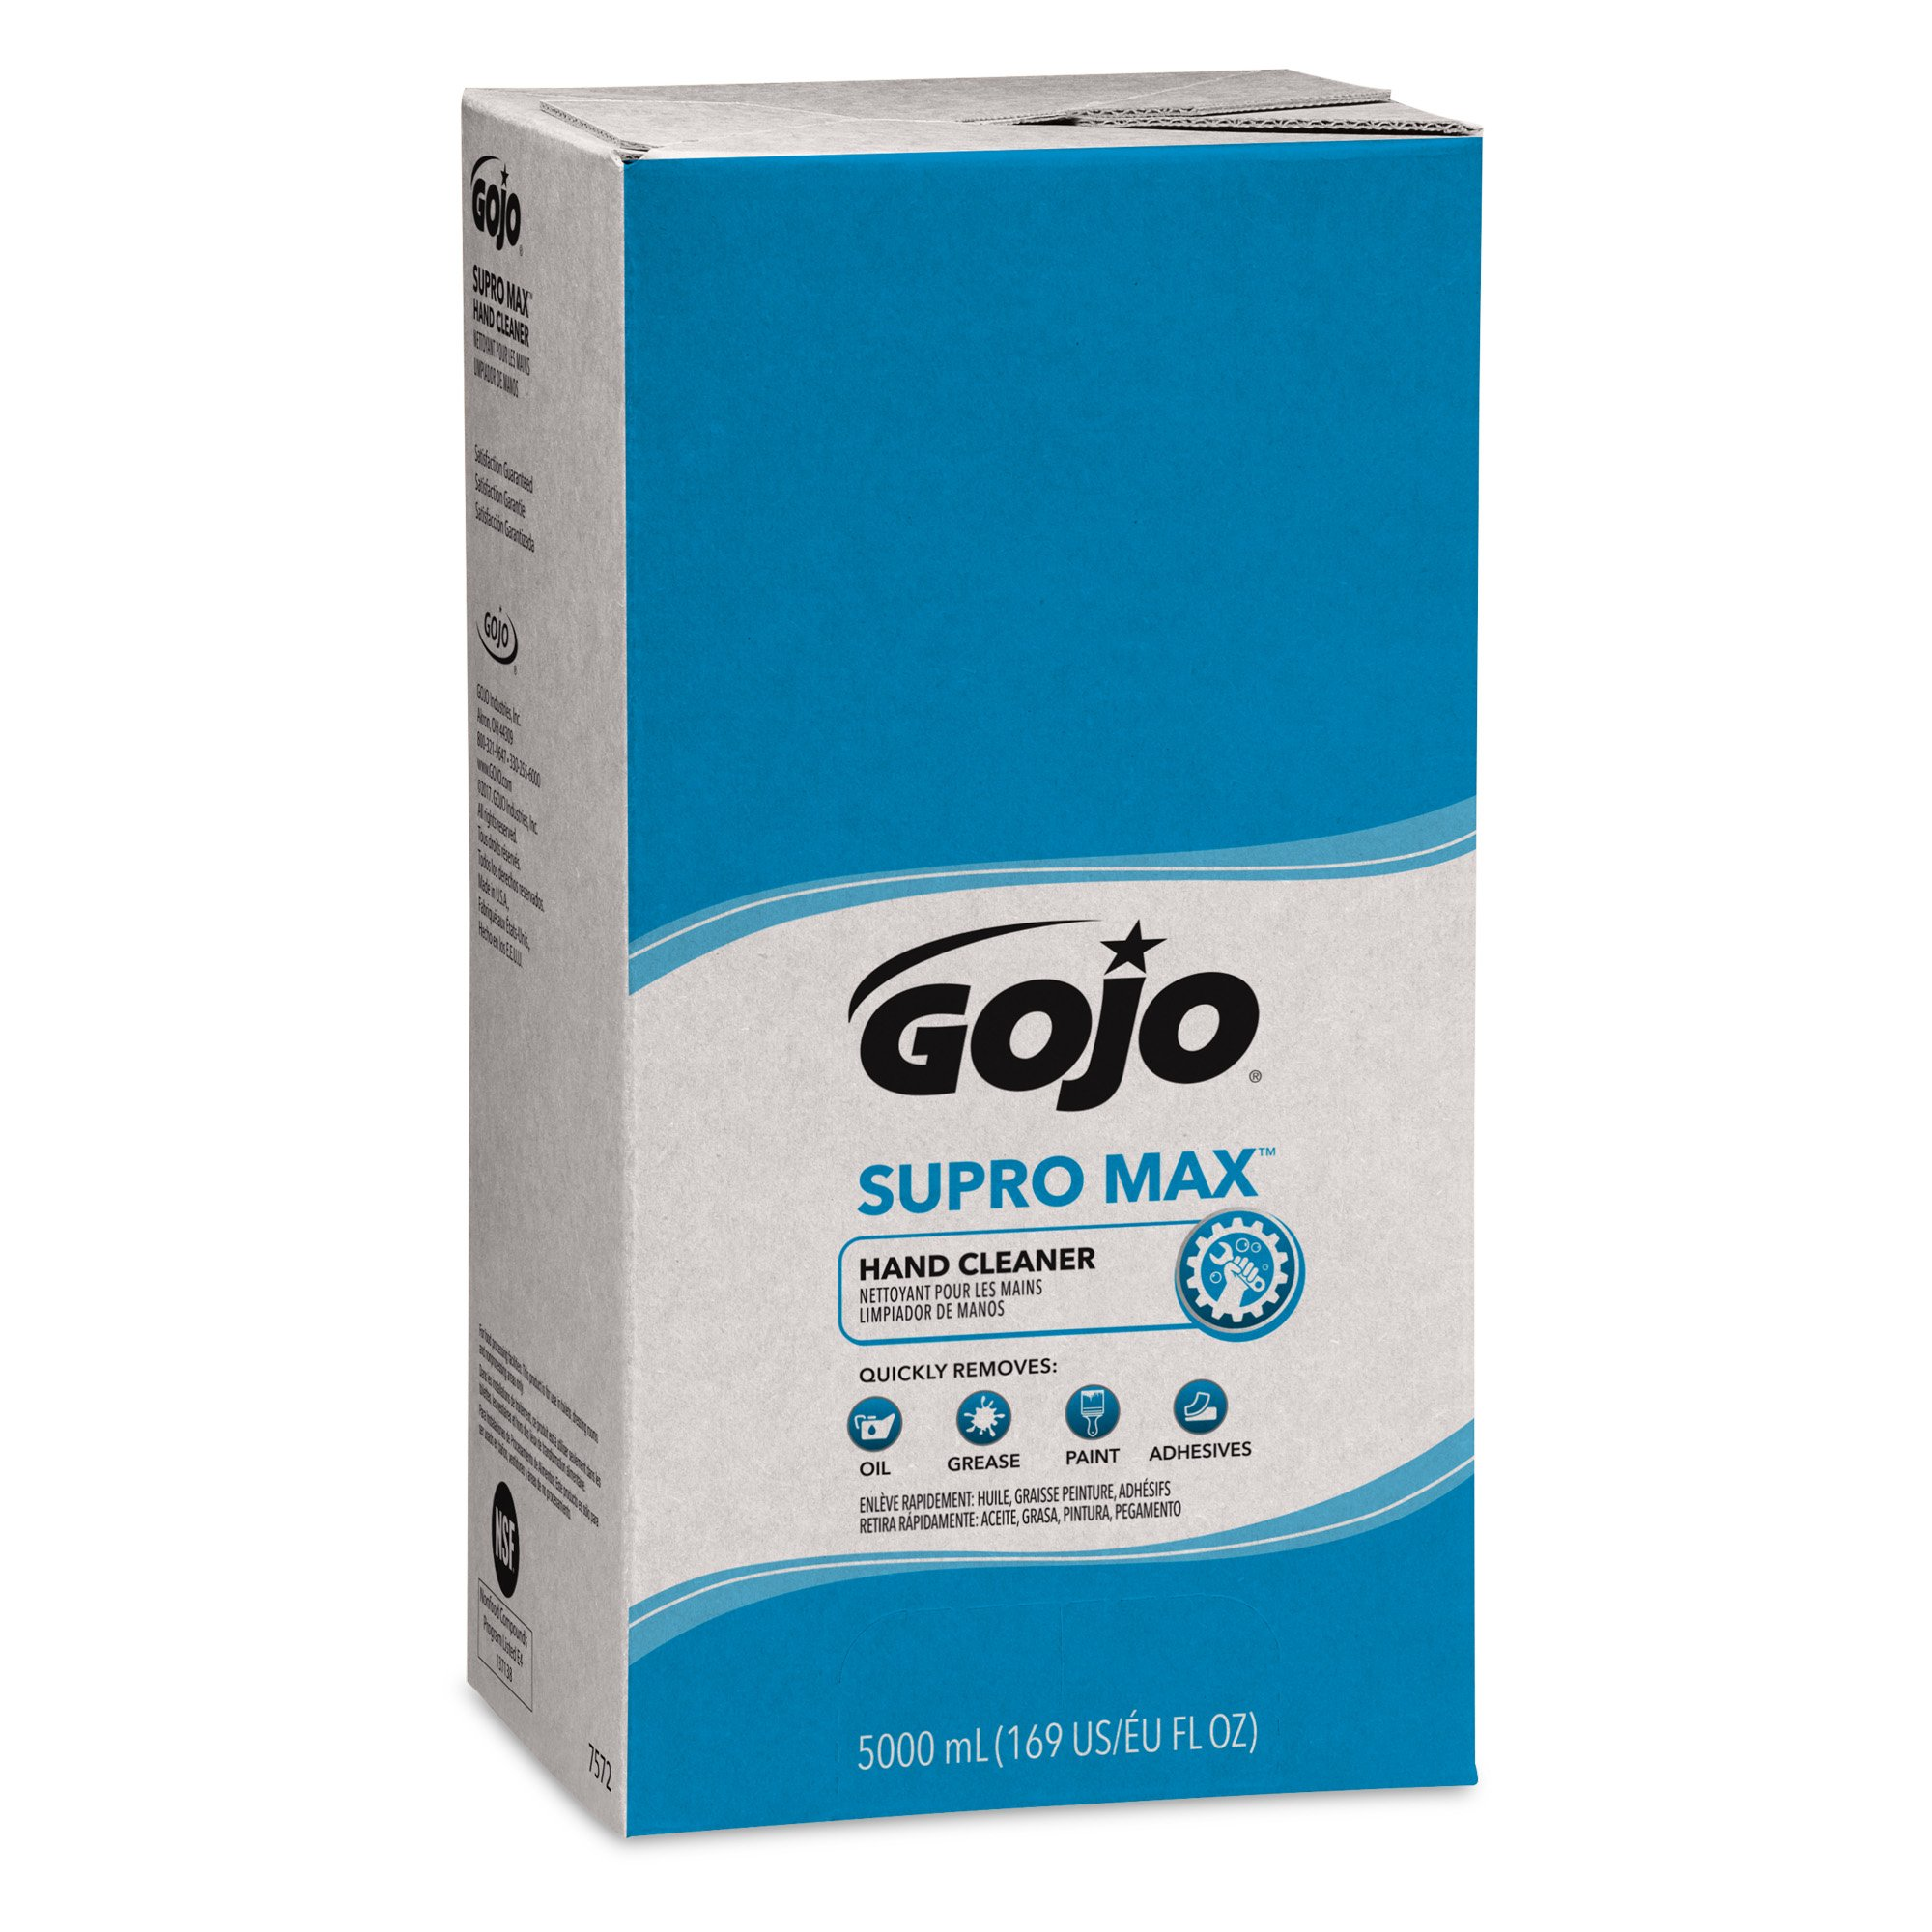 GOJO PRO TDX SUPRO MAX Hand Cleaner, 5000 mL Heavy-Duty Hand Cleaner Refill for GOJO PRO TDX Dispenser (Pack of 2) - 7572-02 by Gojo (Image #4)